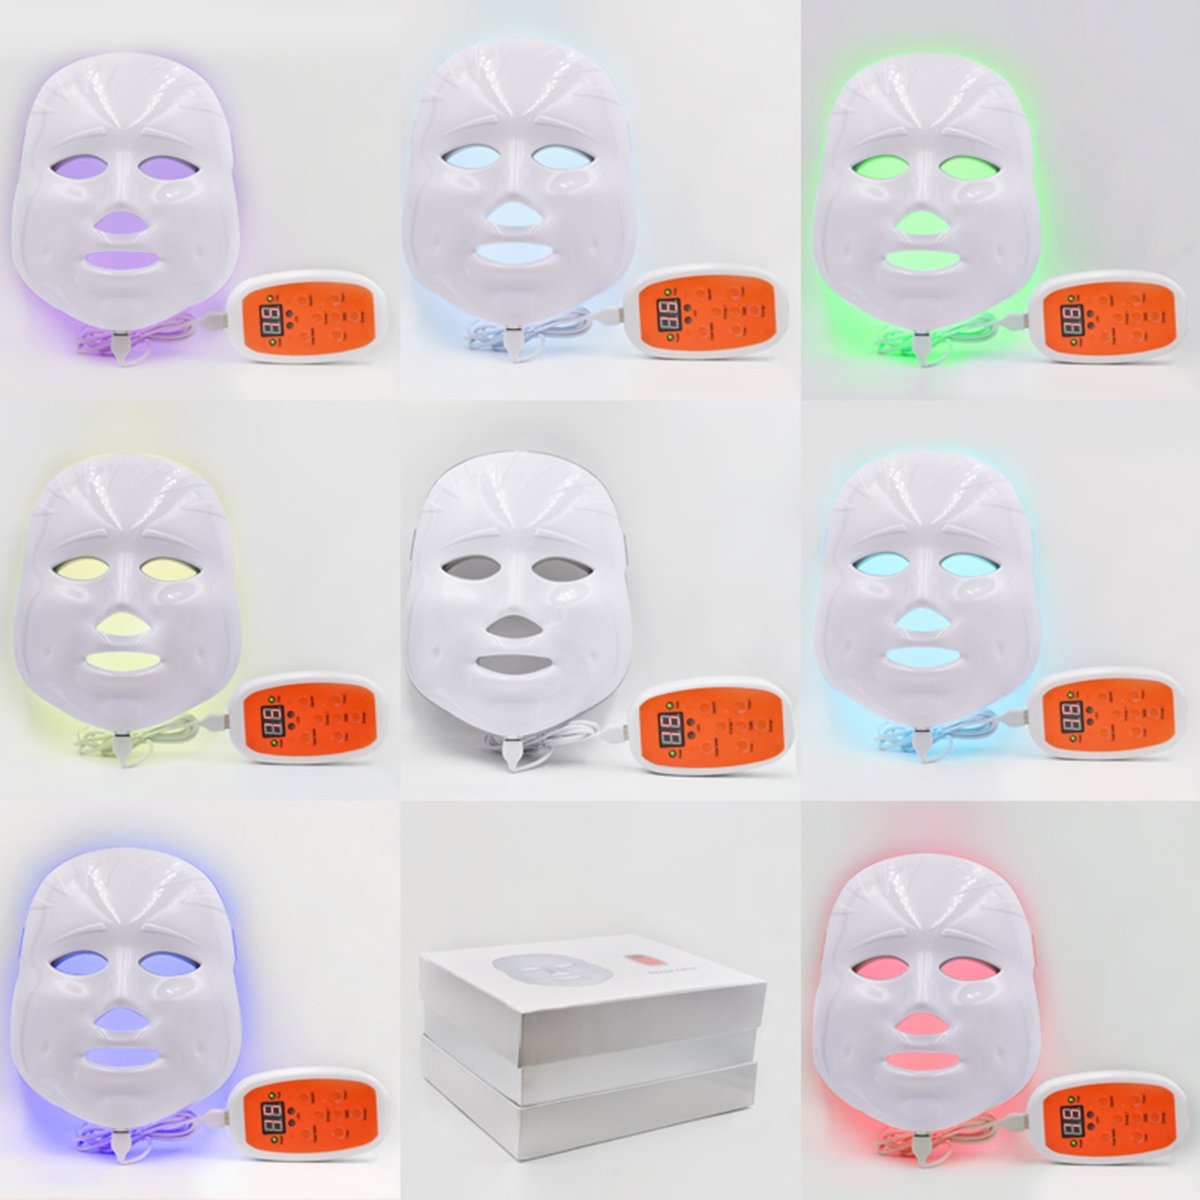 Phototherapy Trichromatic Color LED Mask Instrument Cold Light LED electronic Mask Instrument Professional Beauty Rejuvenation Instrument Therapy Facial Skin Care Mask Device by Simpled (Image #4)